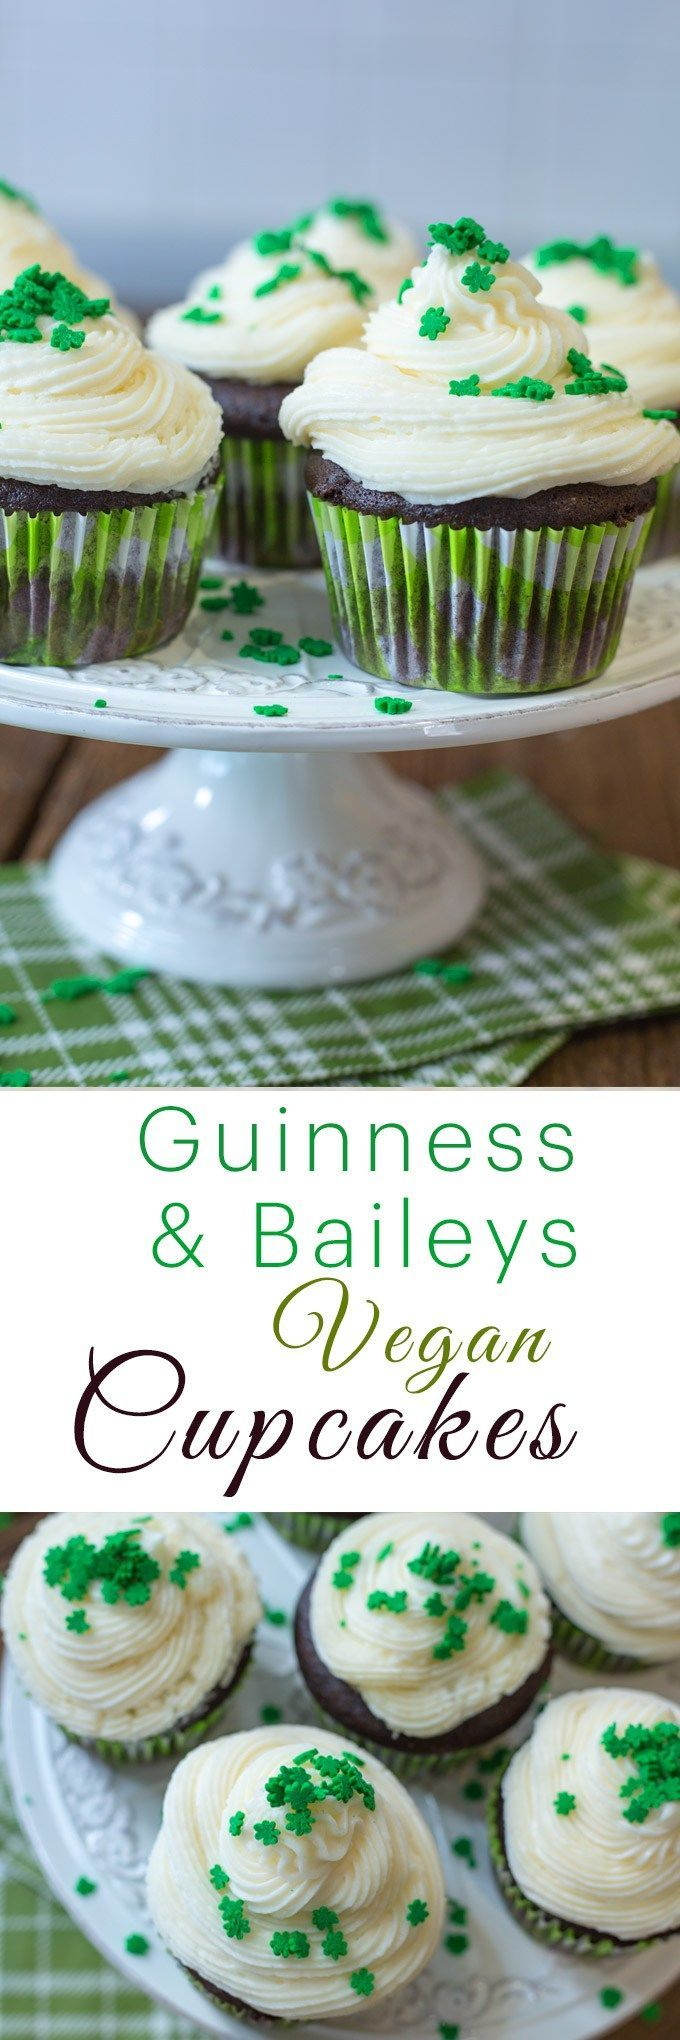 Adult cupcakes made with Irish stout and chocolate for a rich and dark, velvety dessert. Topped with creamy Baileys buttercream, these vegan Guinness cupcakes are the perfect treat to bring to a St Patrick's day party!  Guinness Cupcakes w/ Bailey's Buttercream | VEGAN Cupcake Recipe